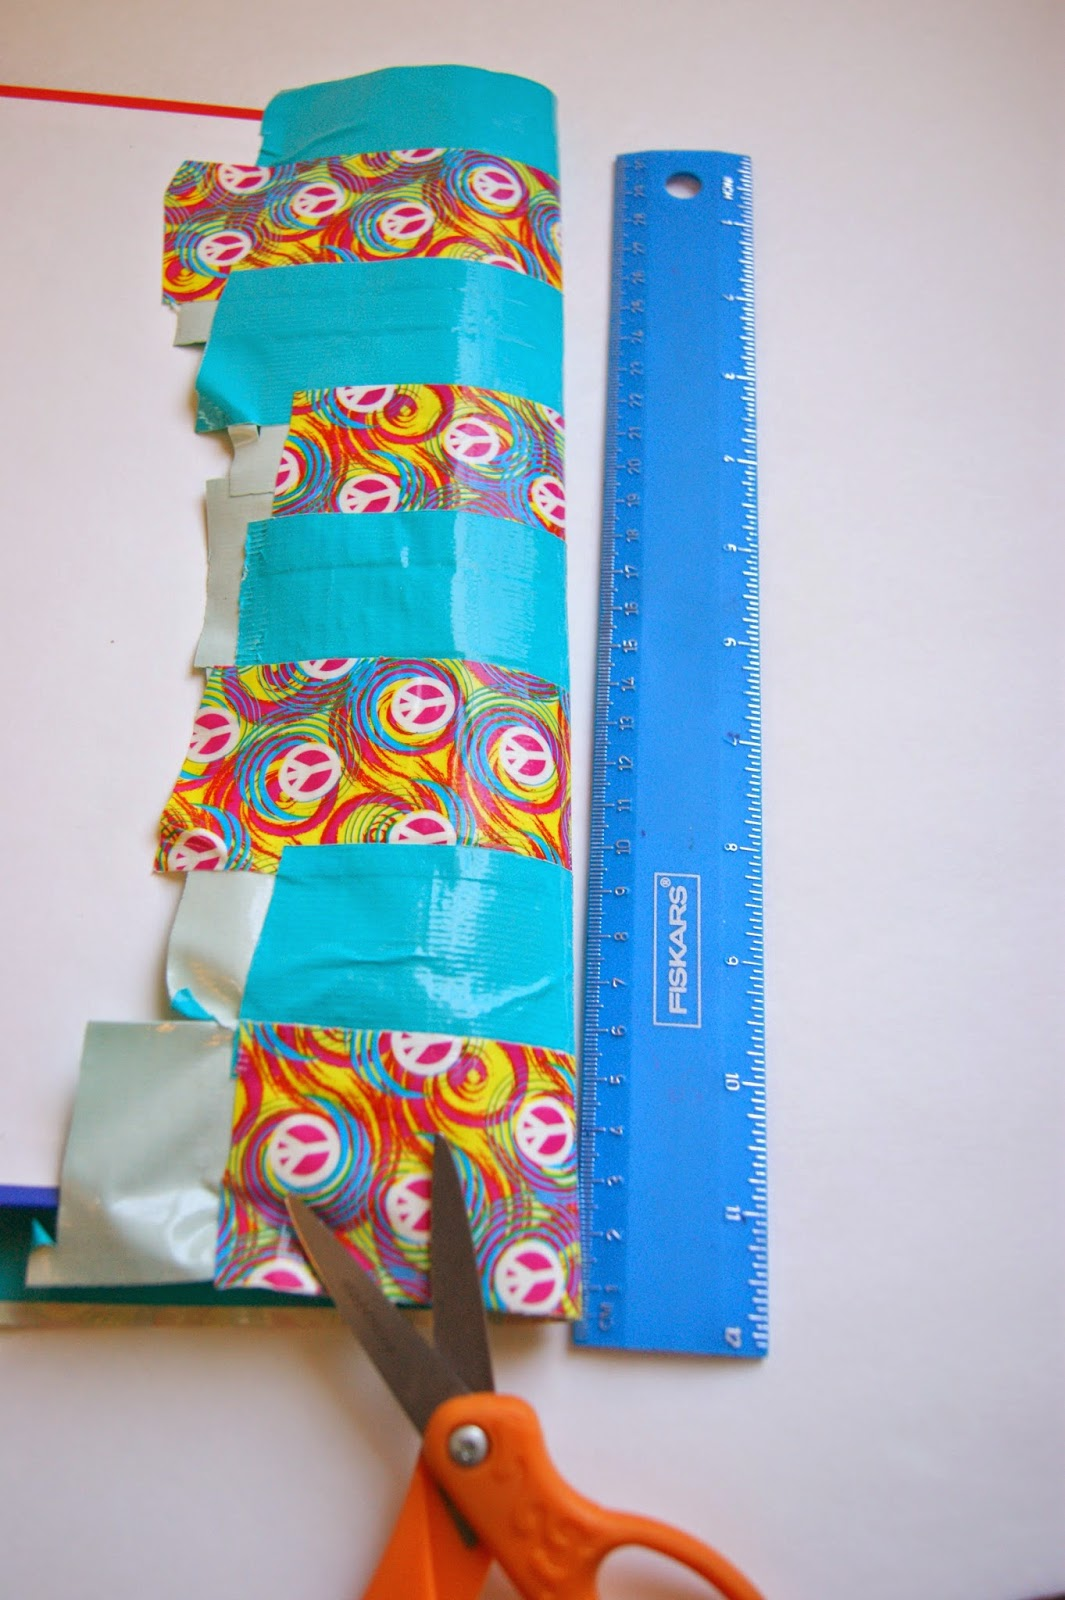 How To Make A Book Cover Without Tape : Michelle paige s book covers with duck tape and washi